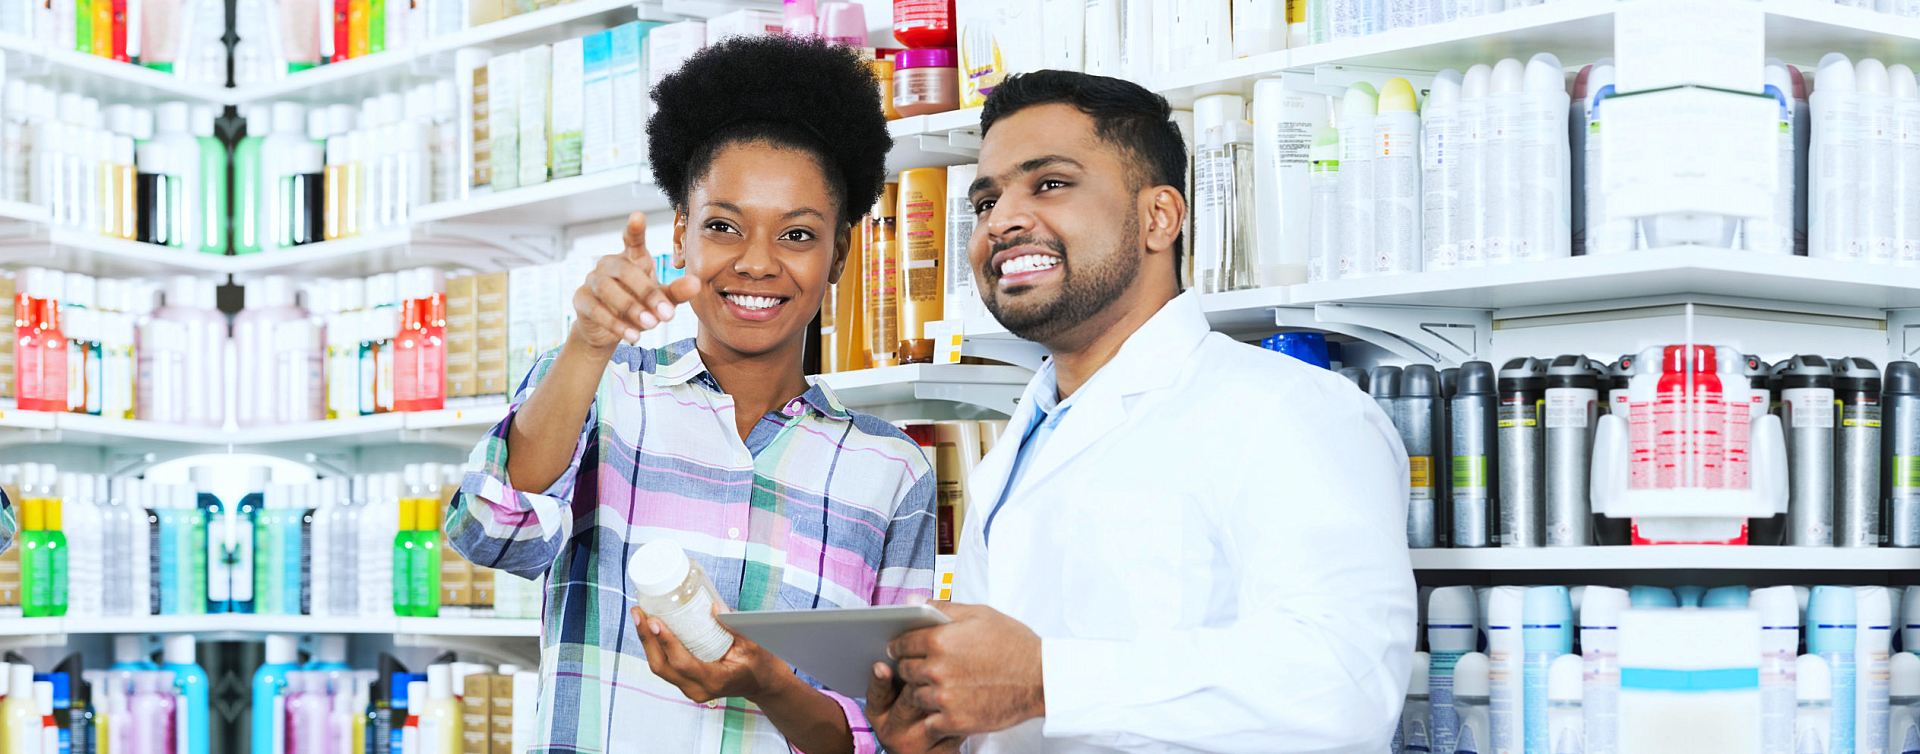 pharmacist and customer looking for something